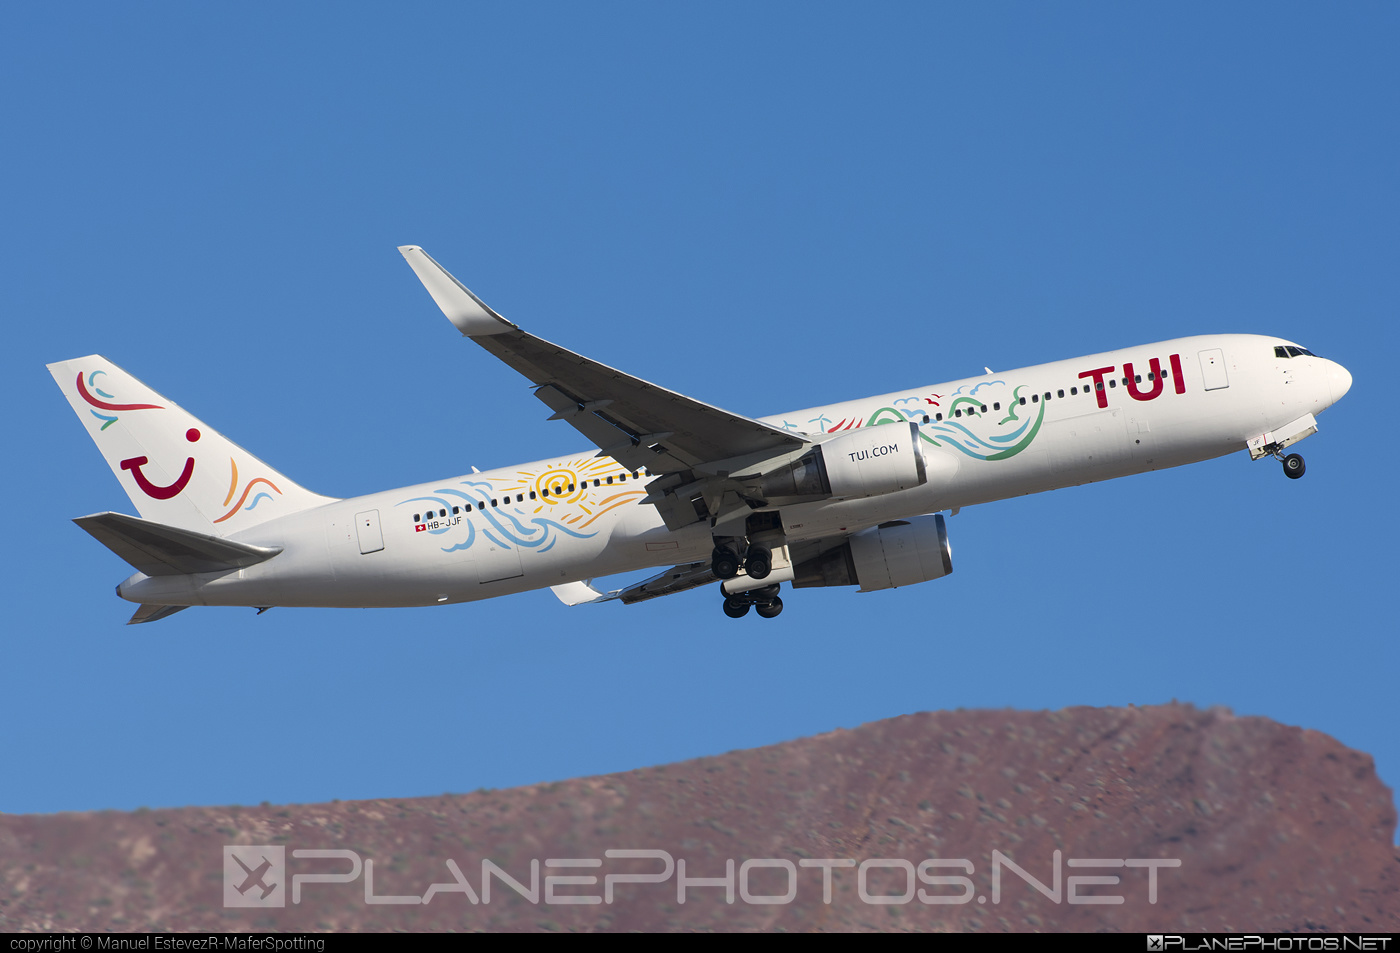 Boeing 767-300ER - HB-JJF operated by TUI Airlines Nederlands #b767 #b767er #boeing #boeing767 #tui #tuiairlines #tuiairlinesnederlands